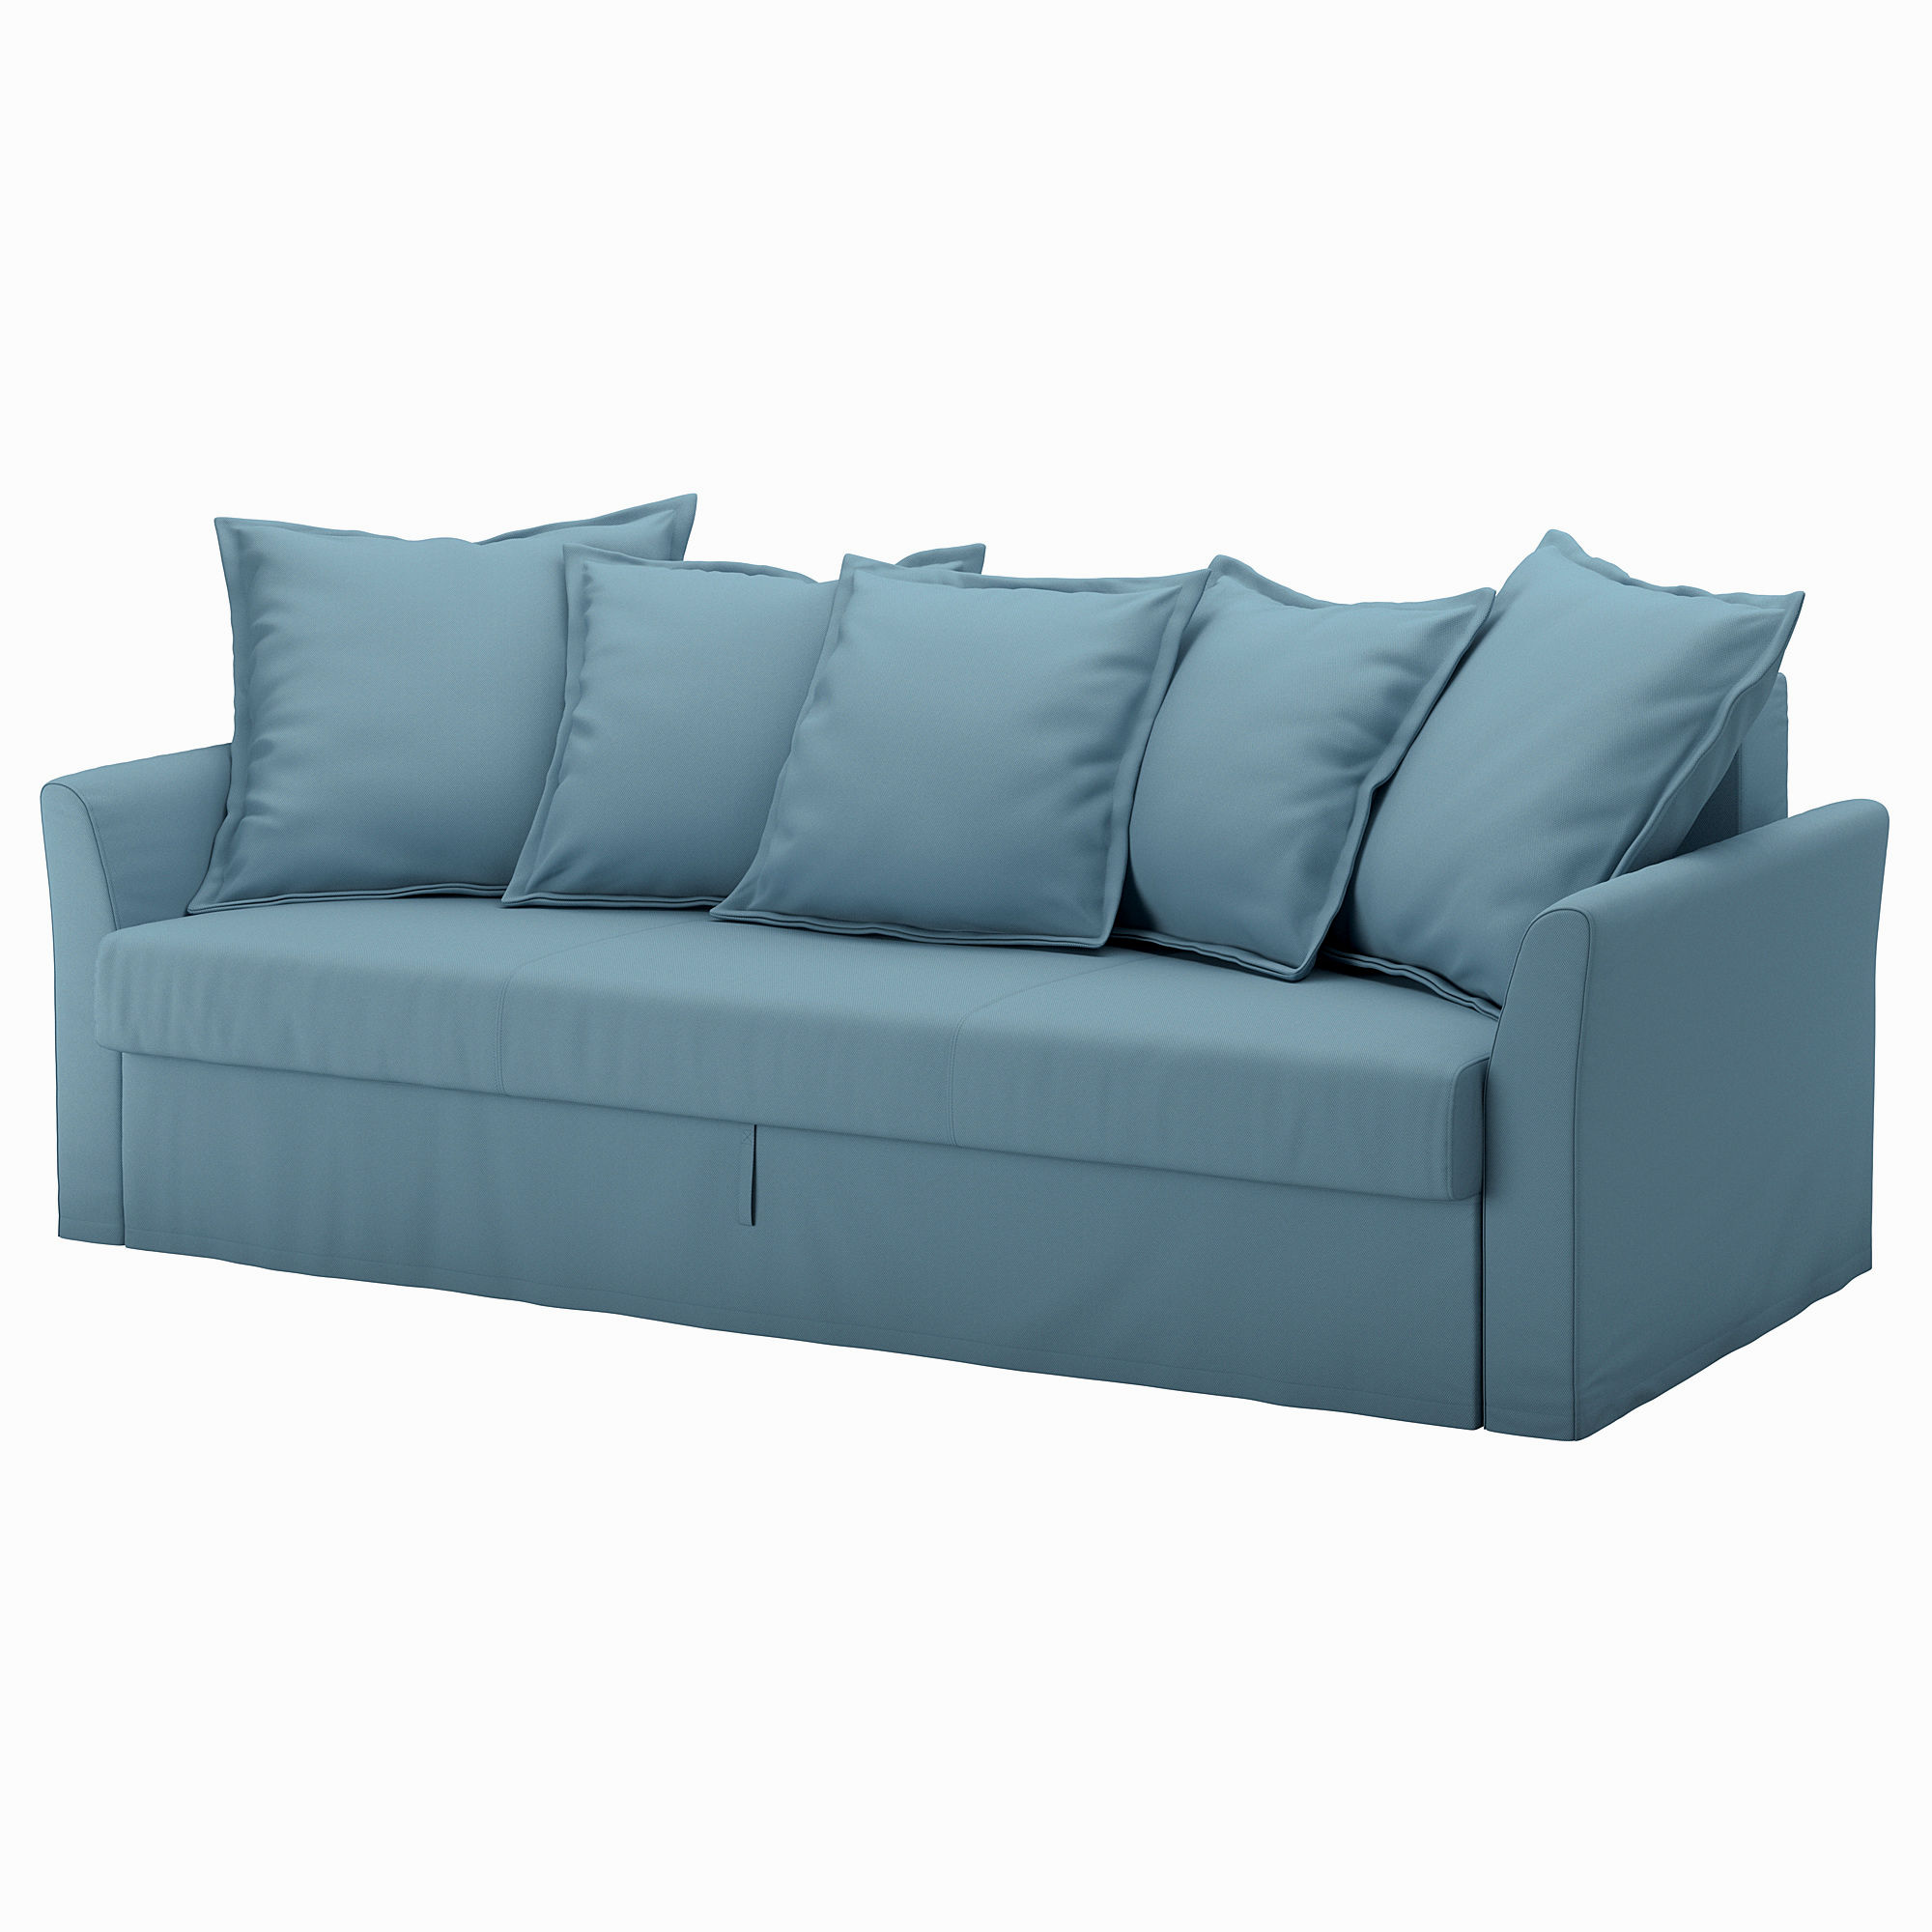 inspirational microfiber sofa bed picture-Cute Microfiber sofa Bed Layout